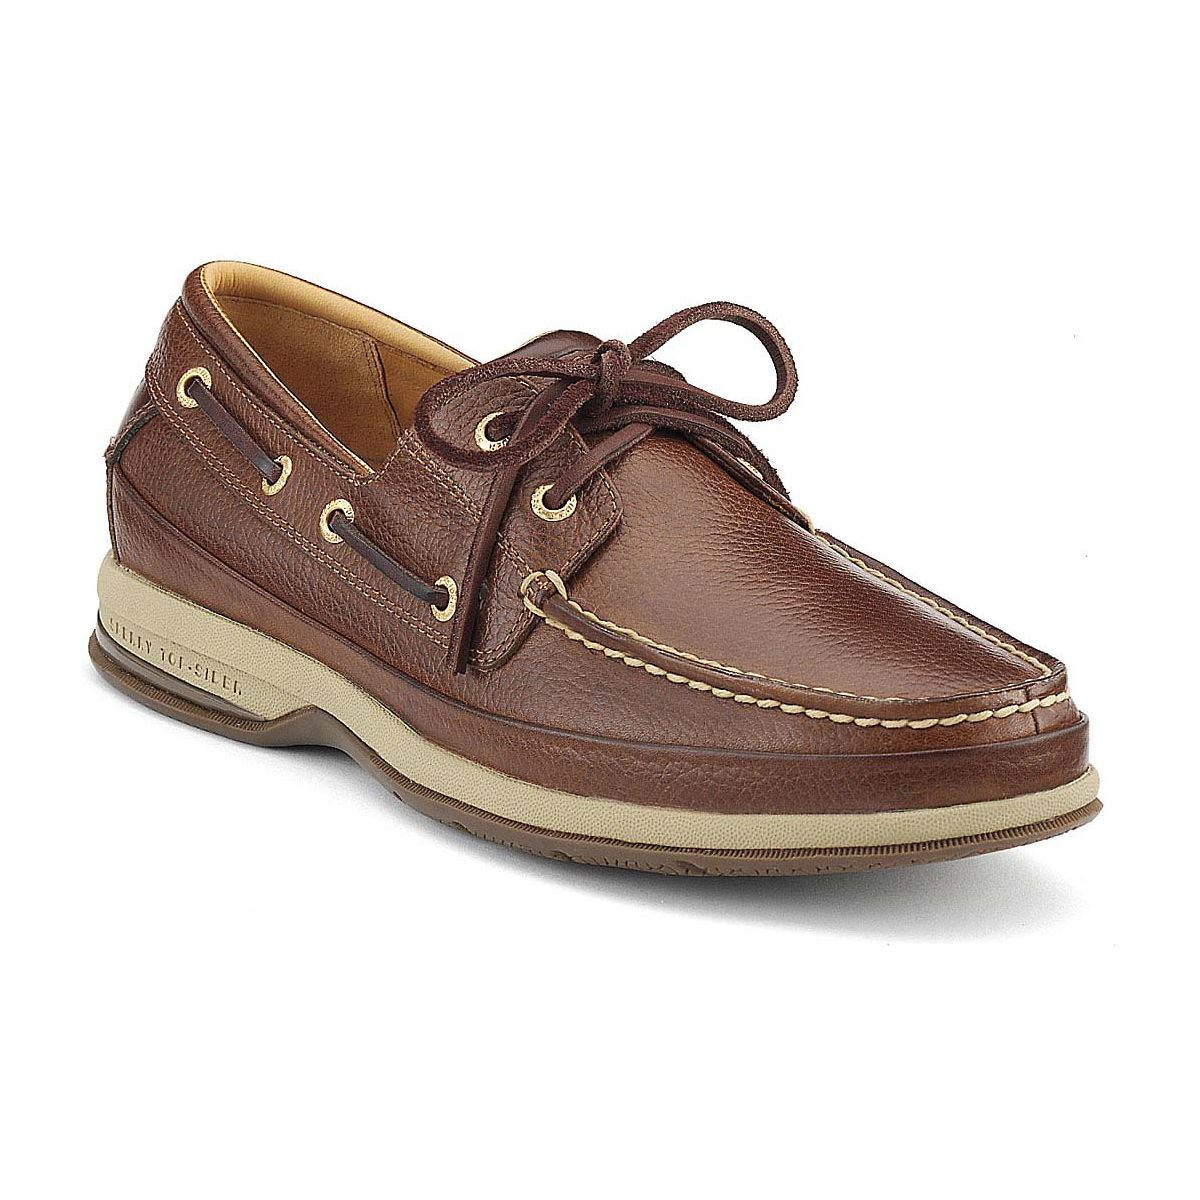 Sperry Top-Sider Gold Cup Perforated Leather Boat Shoes in ... |Sperry Gold